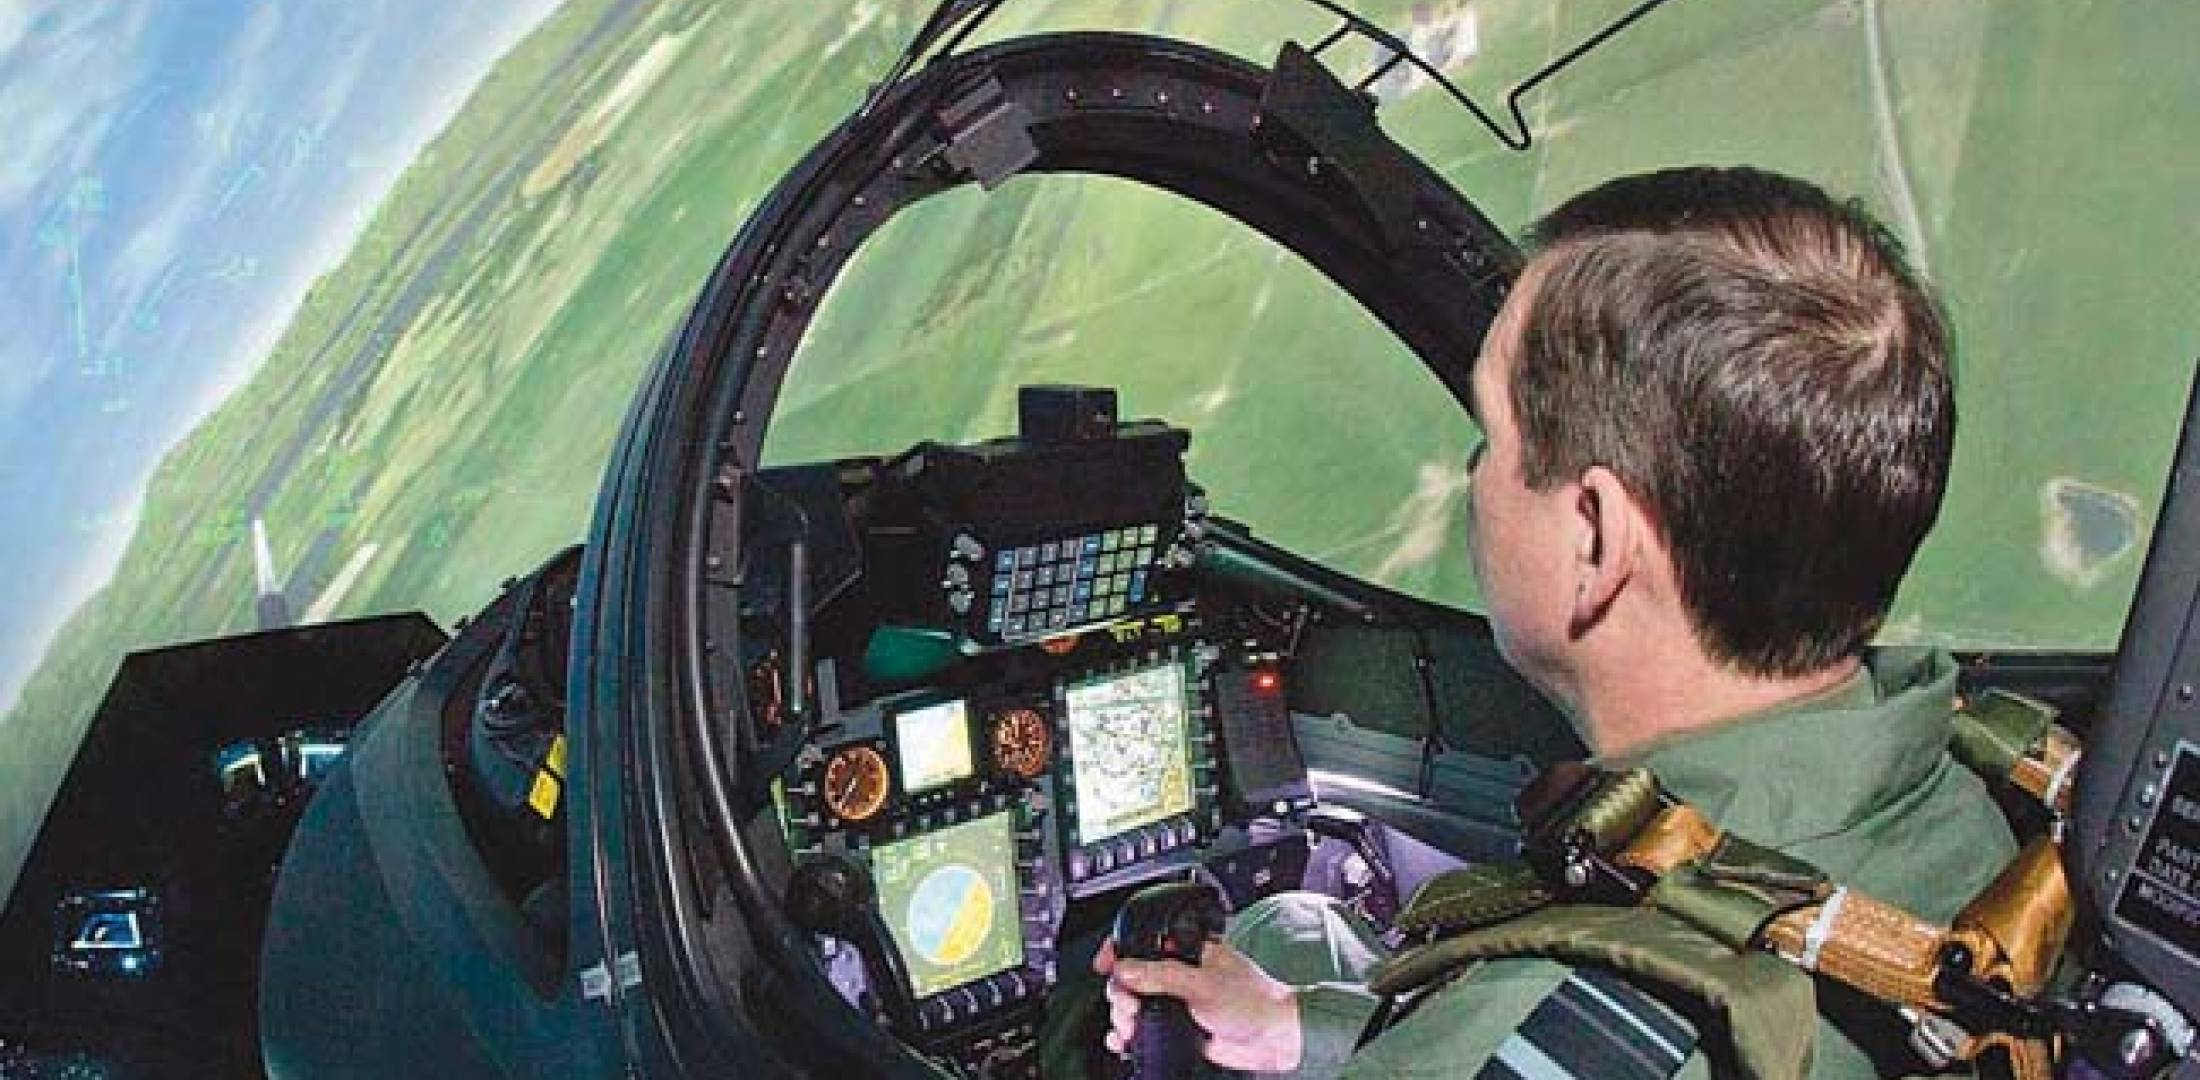 """The view inside one of the two CAE full mission simulators. These are not designed to provide full-motion, but the pilot seat does """"nudge"""" and """"roll"""" and therefore can be """"quite sick-making,"""" according to Ascent."""